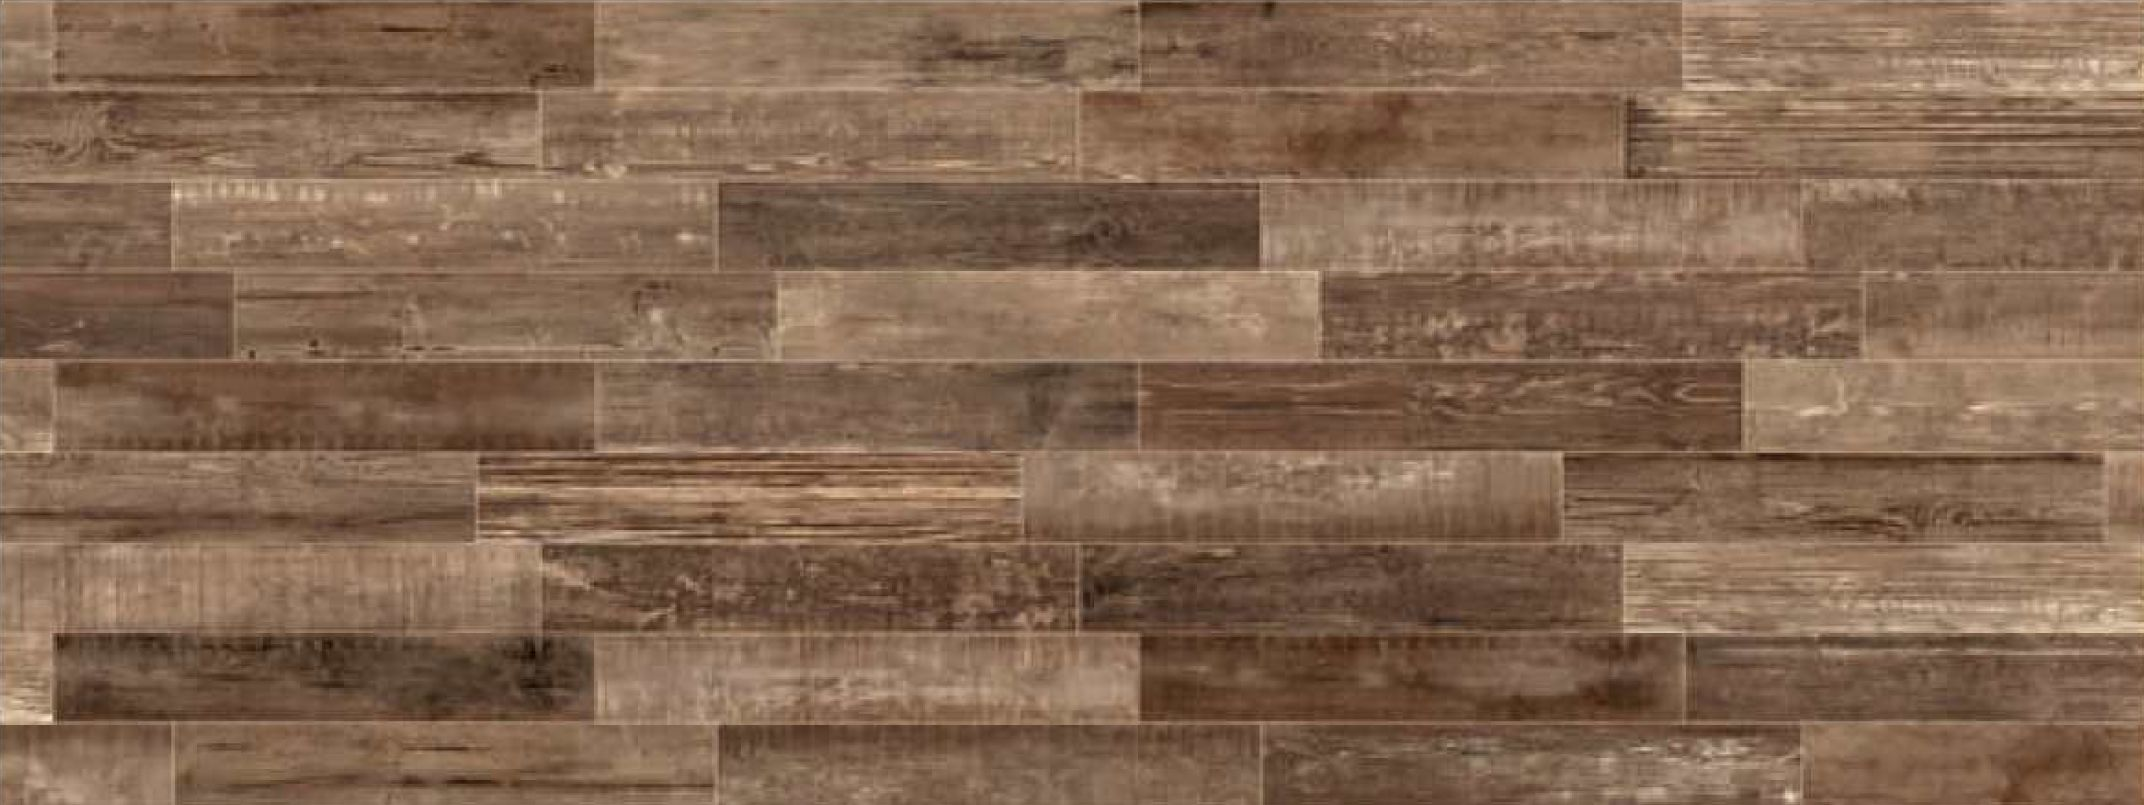 Scrapwood Fire Is Available In An 8x48 Plank Wood Look Porcelain Tile Wood Porcelain Tile Hardwood